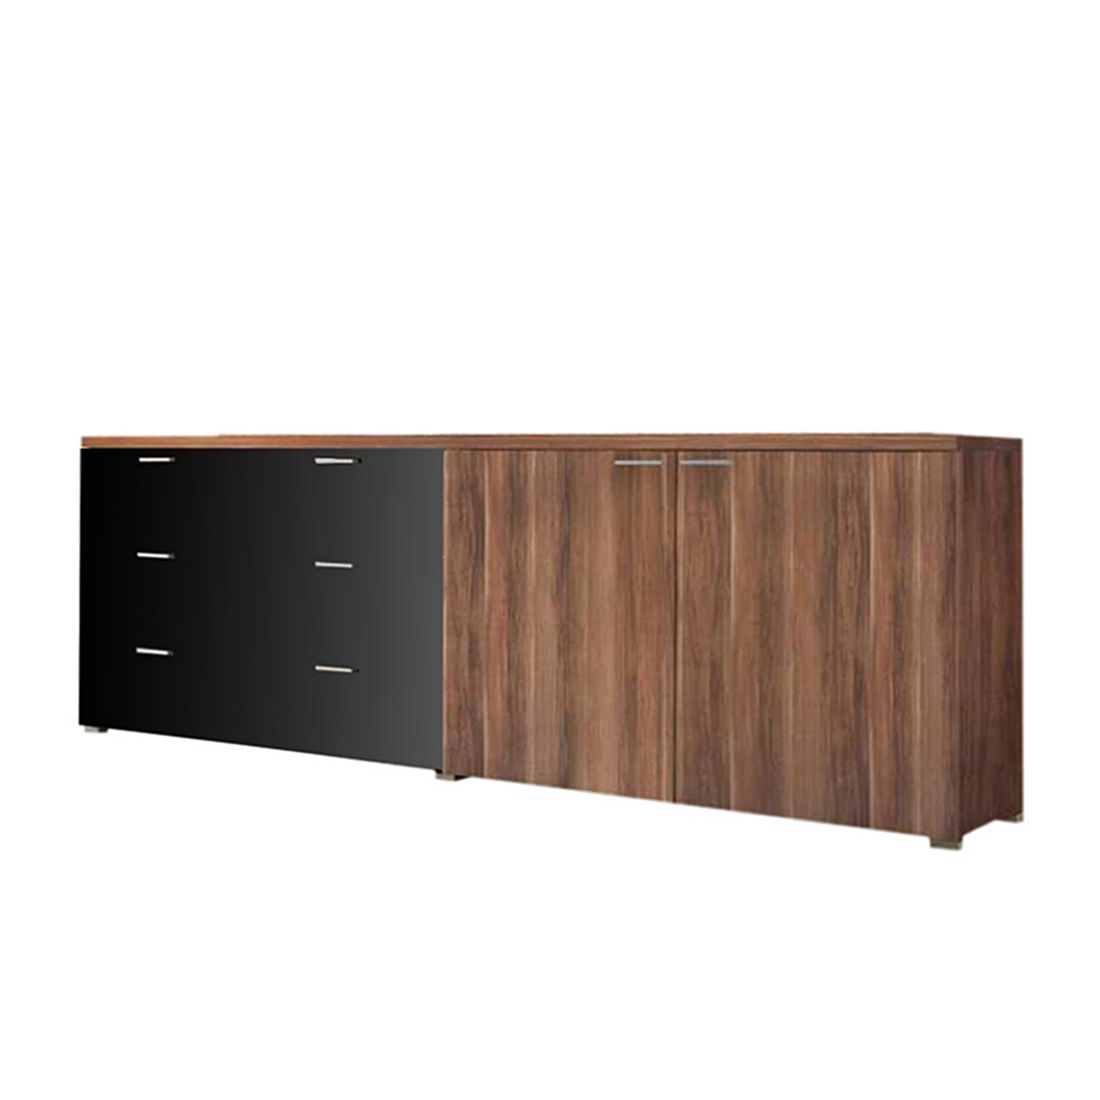 Baltimore Walnuss Kommode Sideboard Walnuss Schwarz Sideboard Solido 3 Highboard